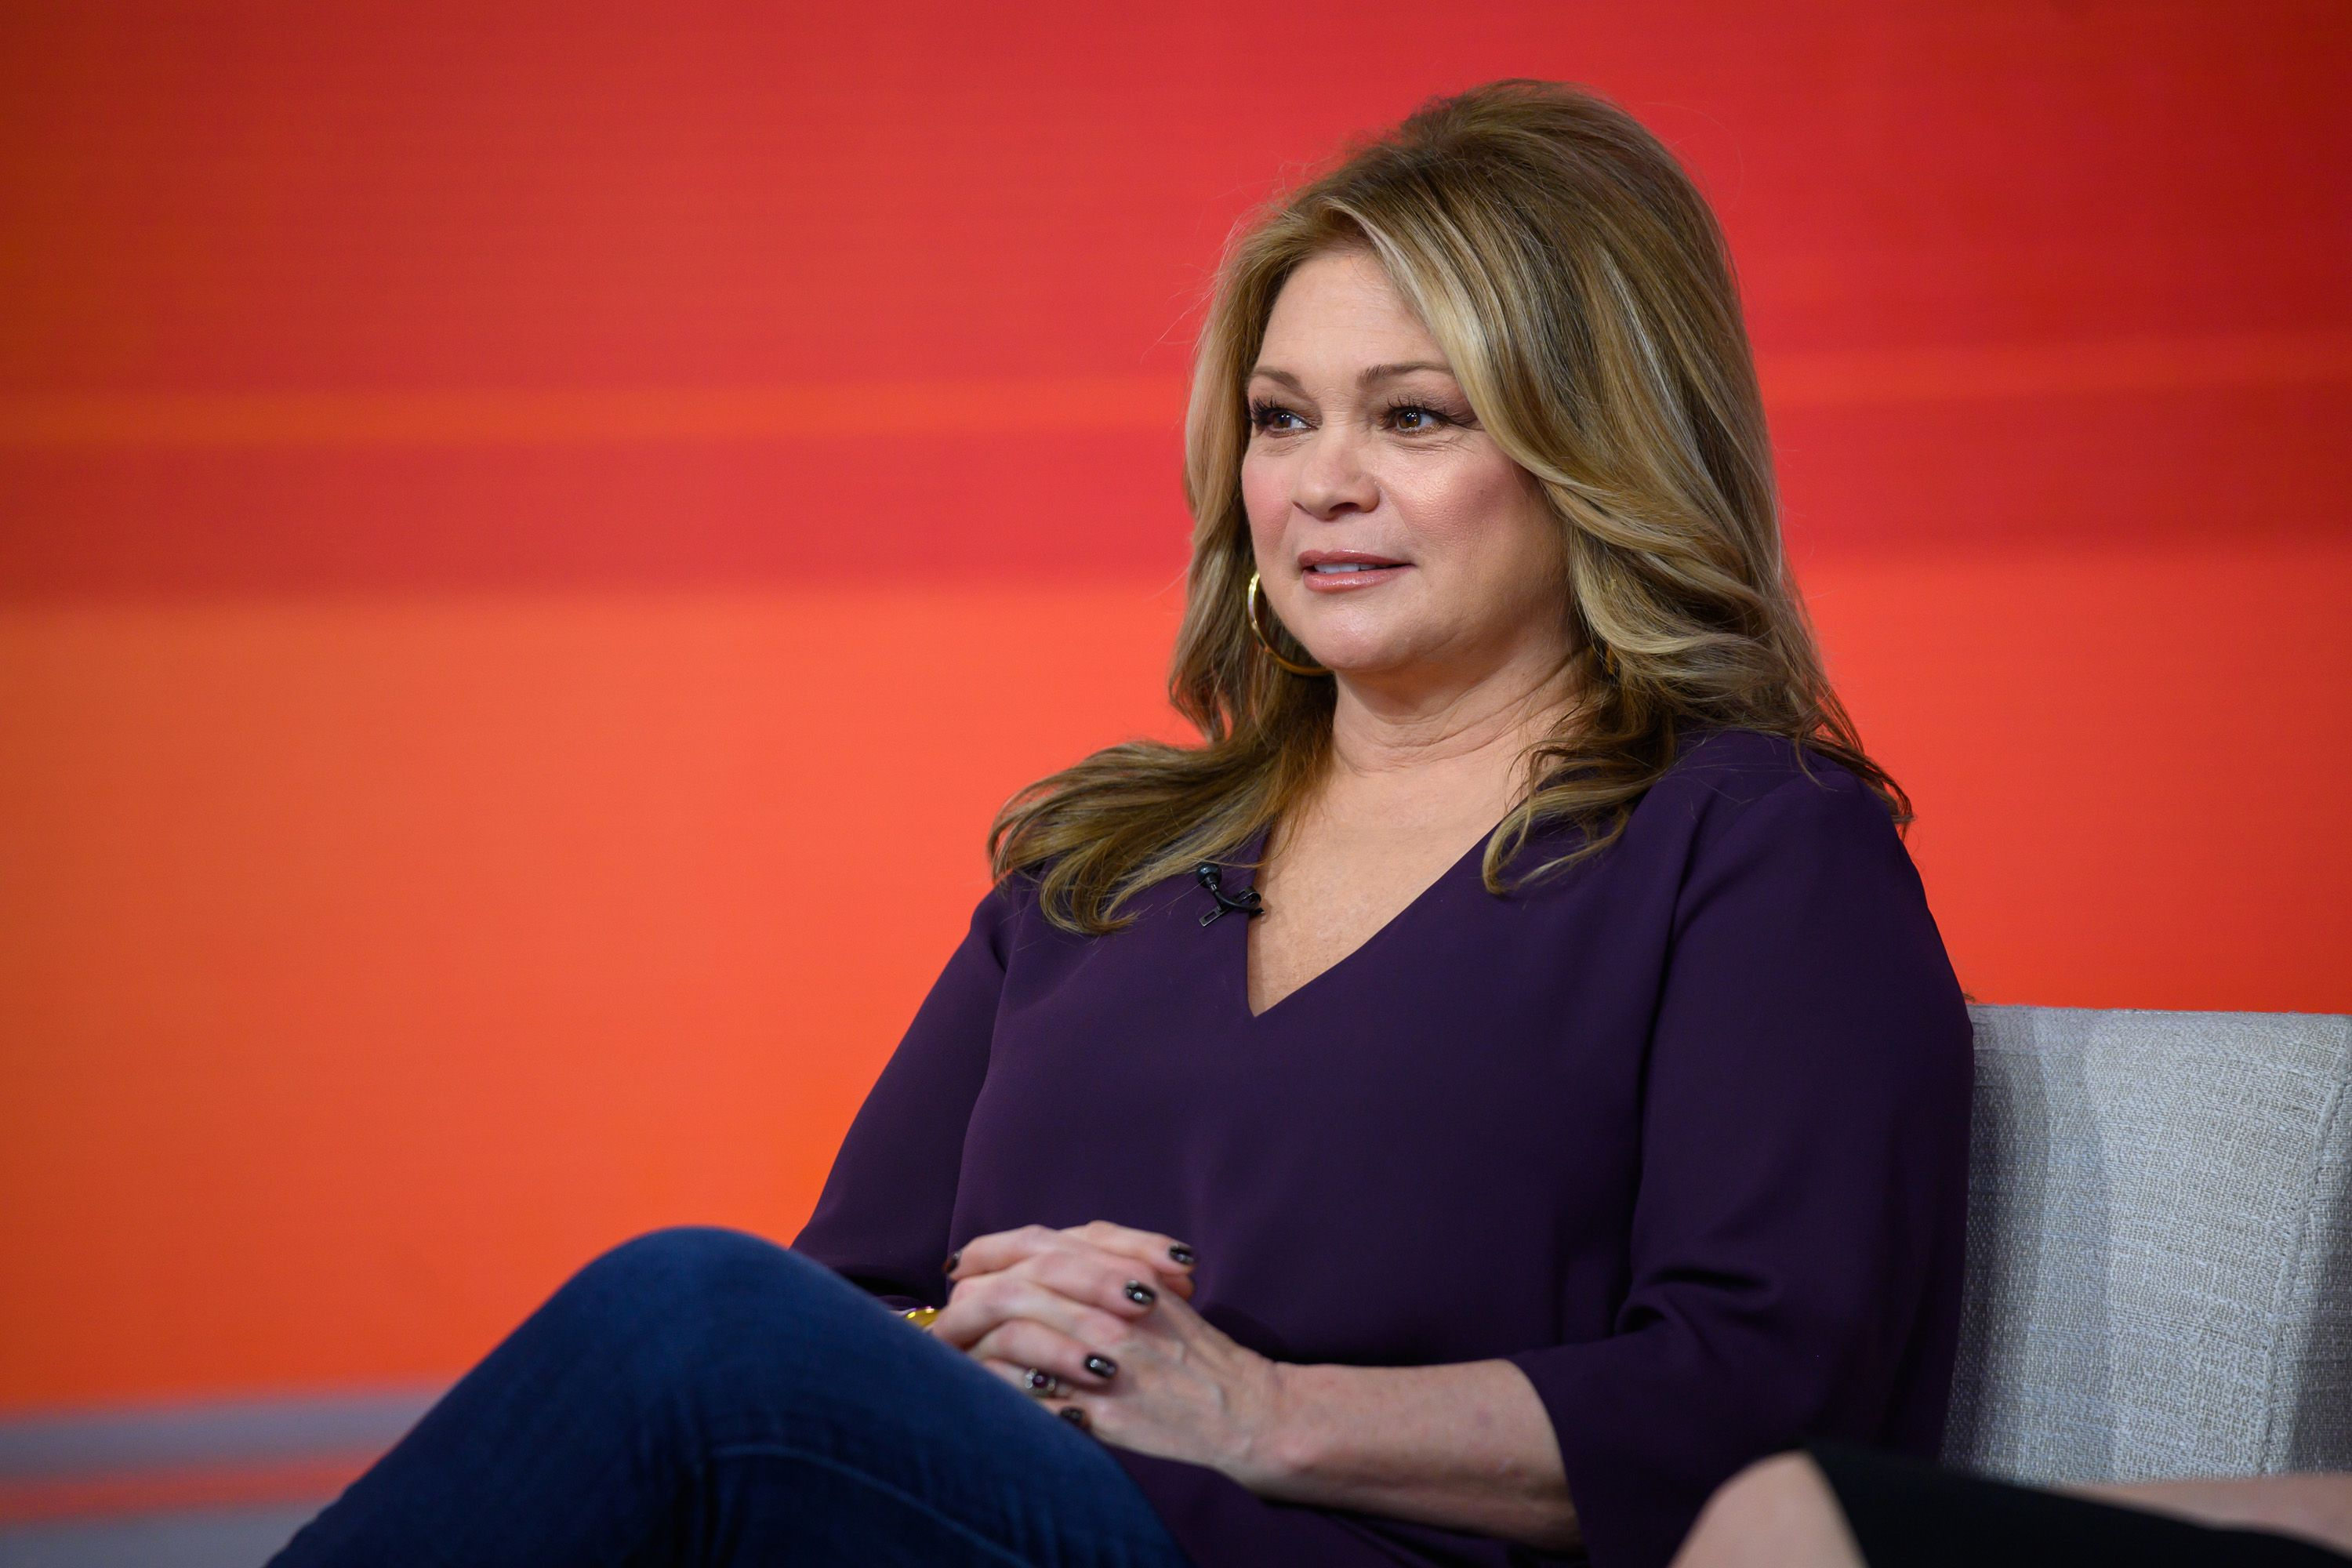 Valerie Bertinelli Opens Up About Her Lifelong Body Image Issues